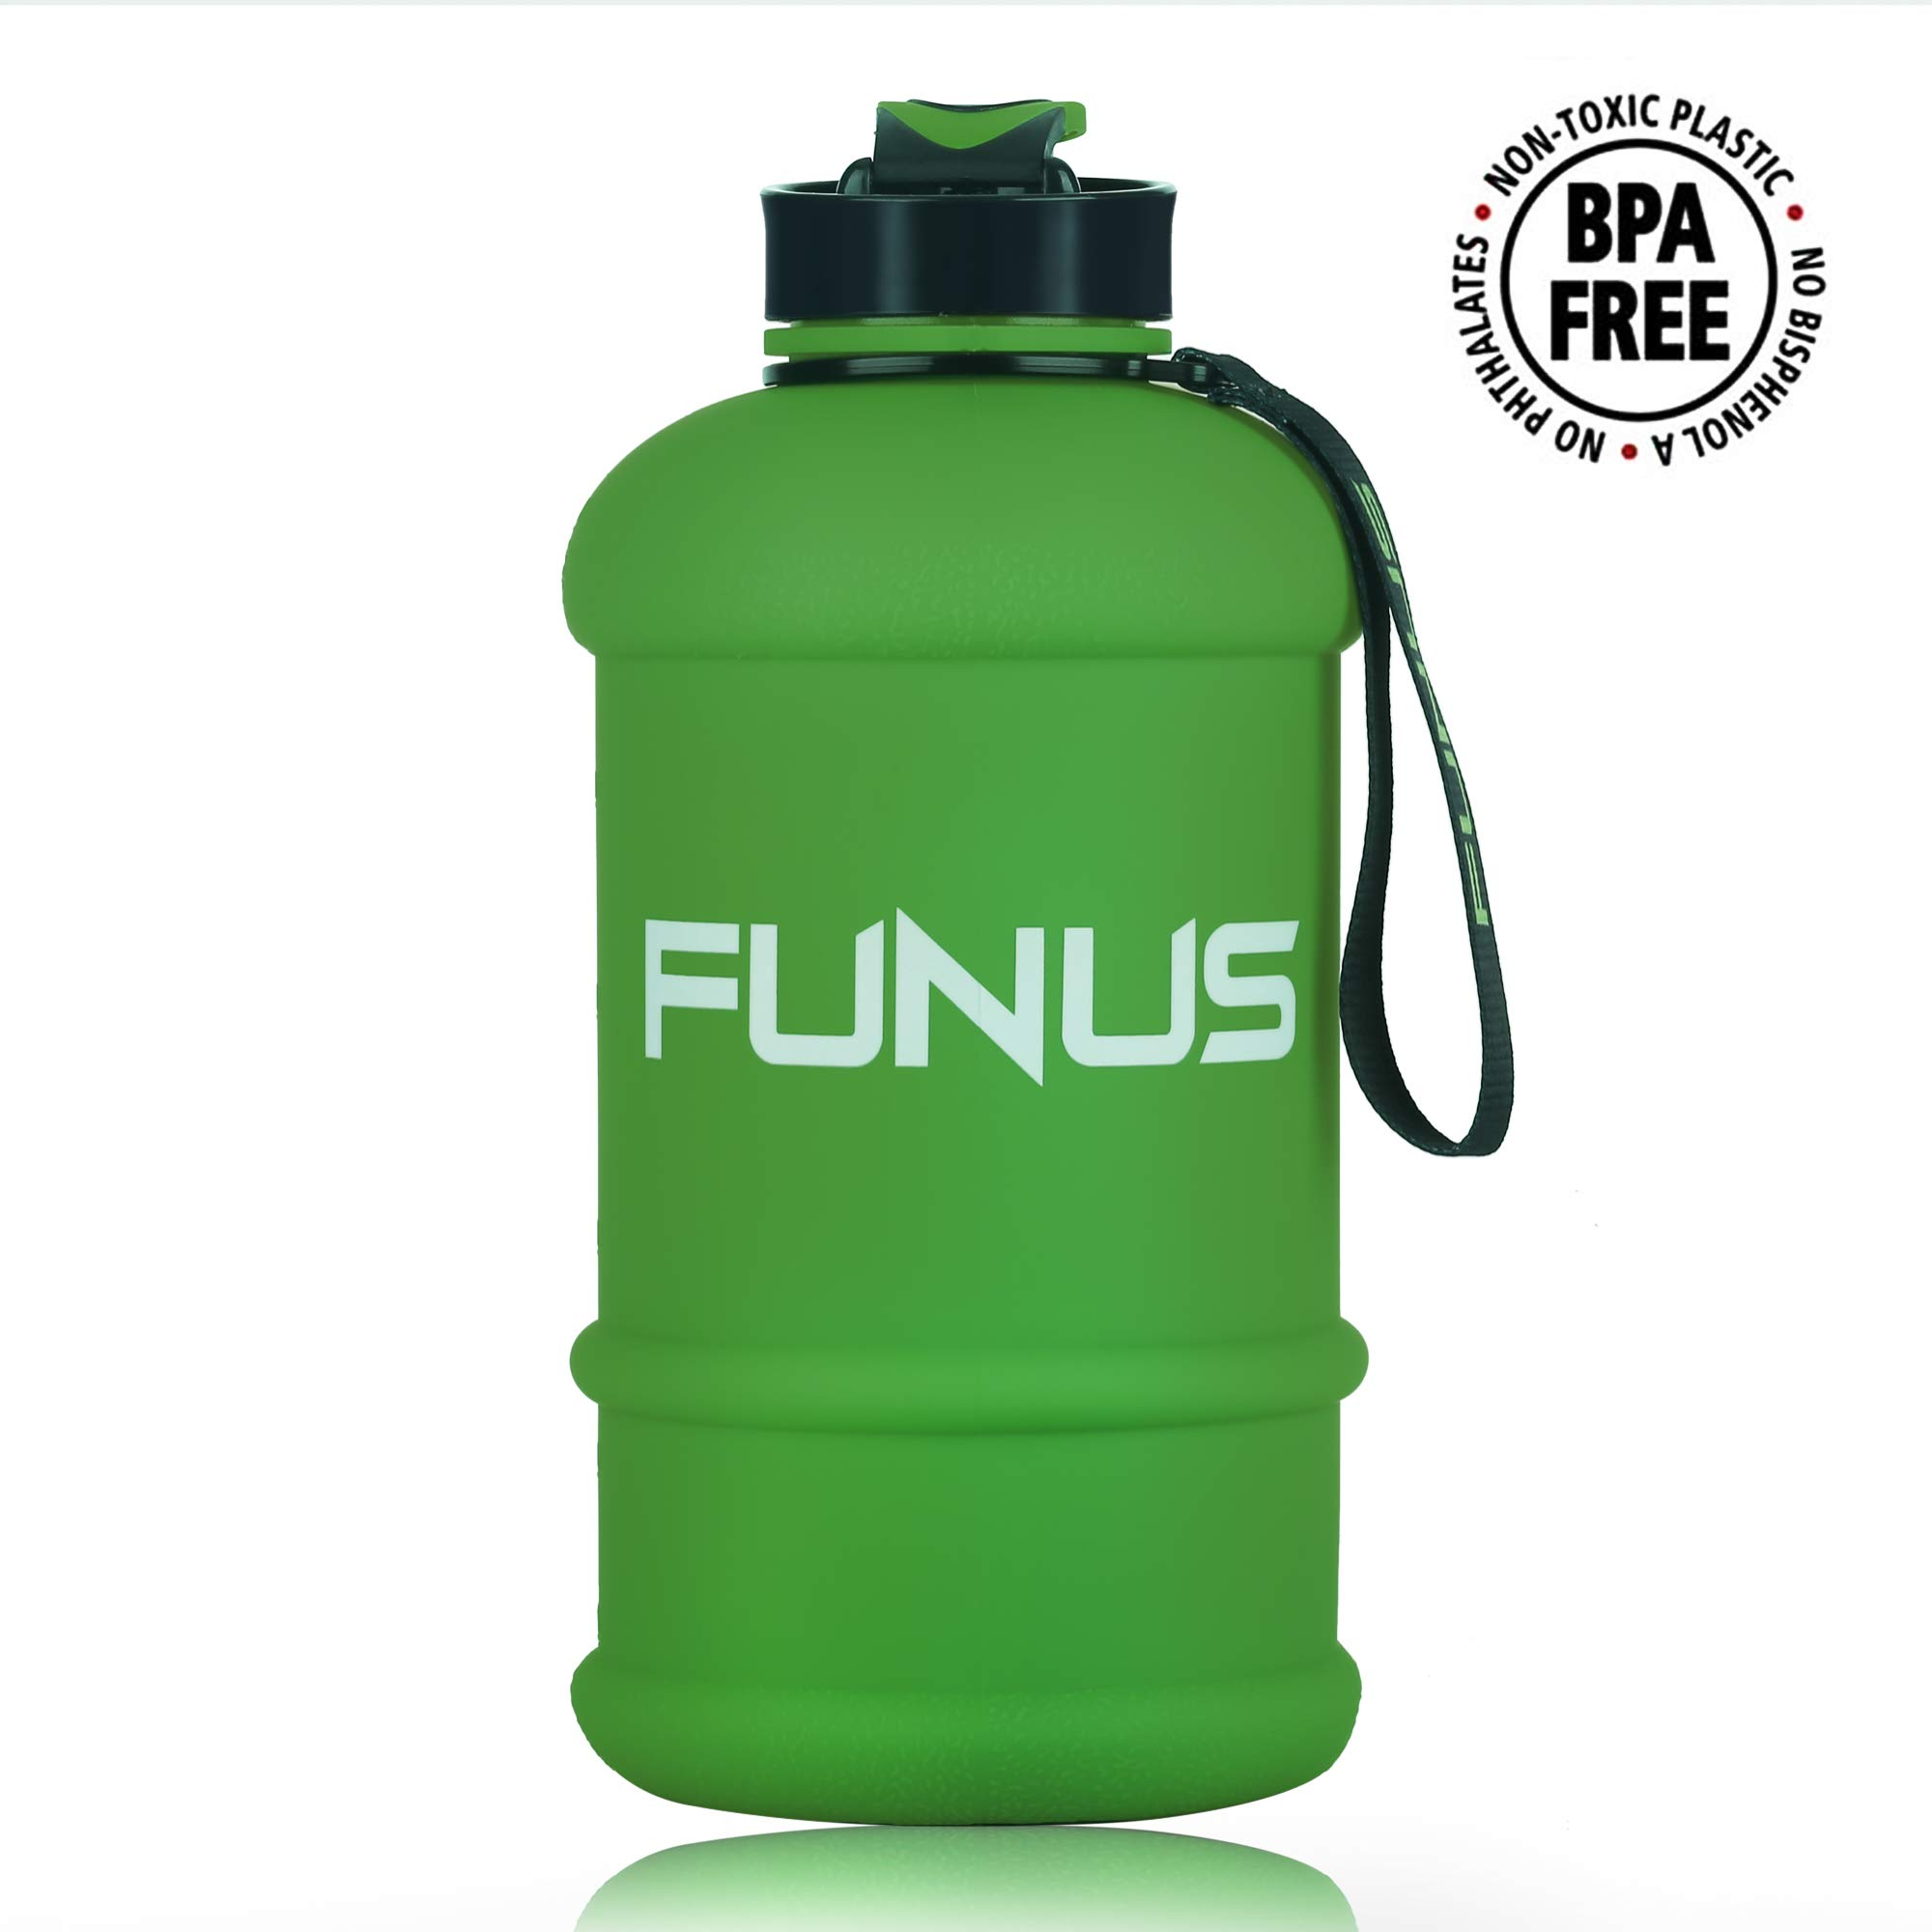 FUNUS Big Water Bottle 1.3L-2.2L Large Water Bottle BPA Free Leak Proof Reusable Odorless Big Capacity Water Jug for Men Women Fitness Gym Outdoor Climbing Gym Water Bottle (1.3L Matte Olive Green) by FUNUS